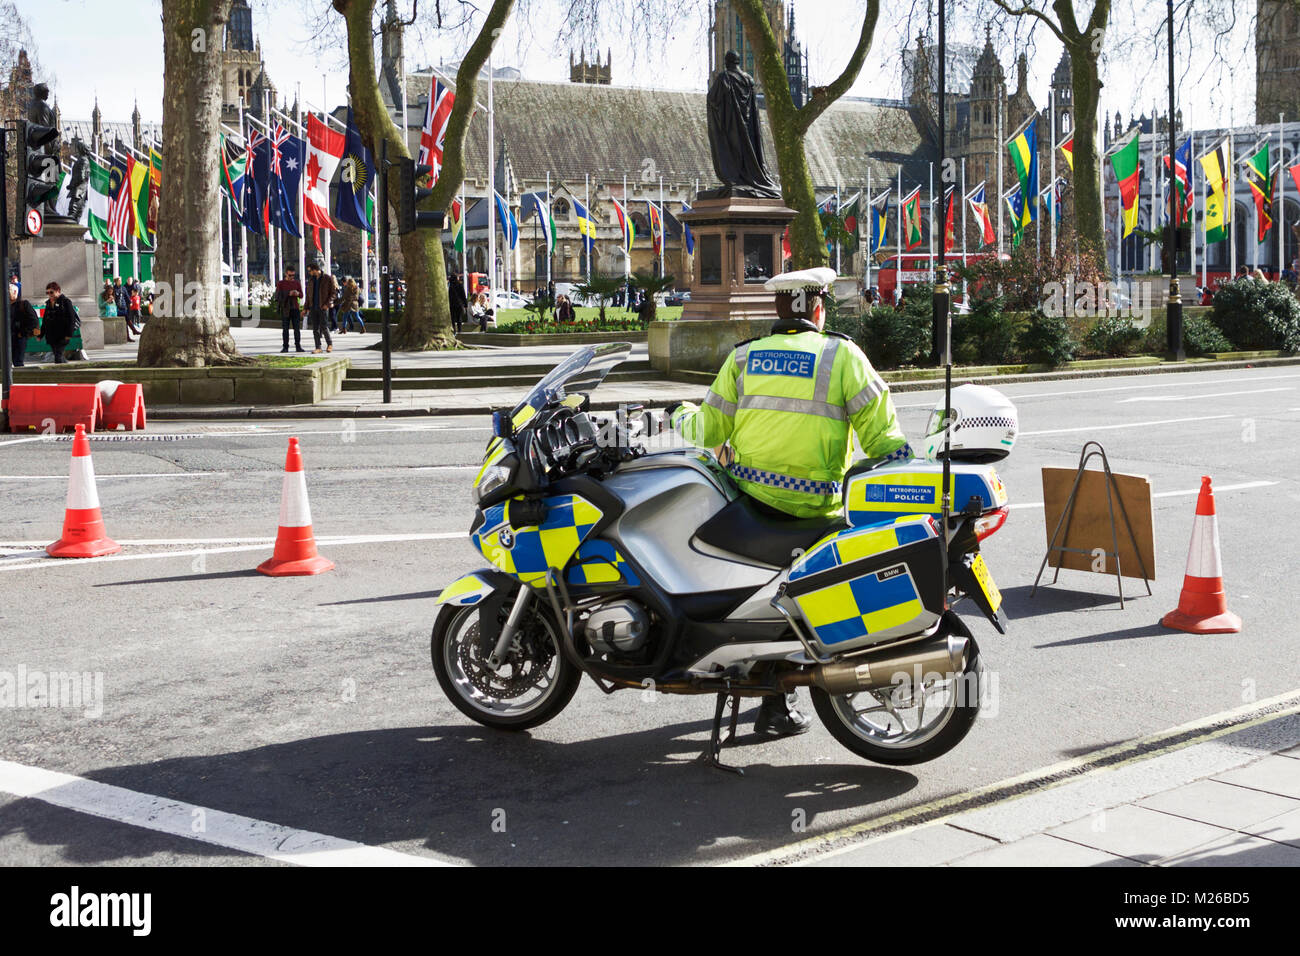 Metropolitan Police Motorcyclist, Parliament Square, London, UK. Commonwealth Day London. Commonwealth flags London. - Stock Image